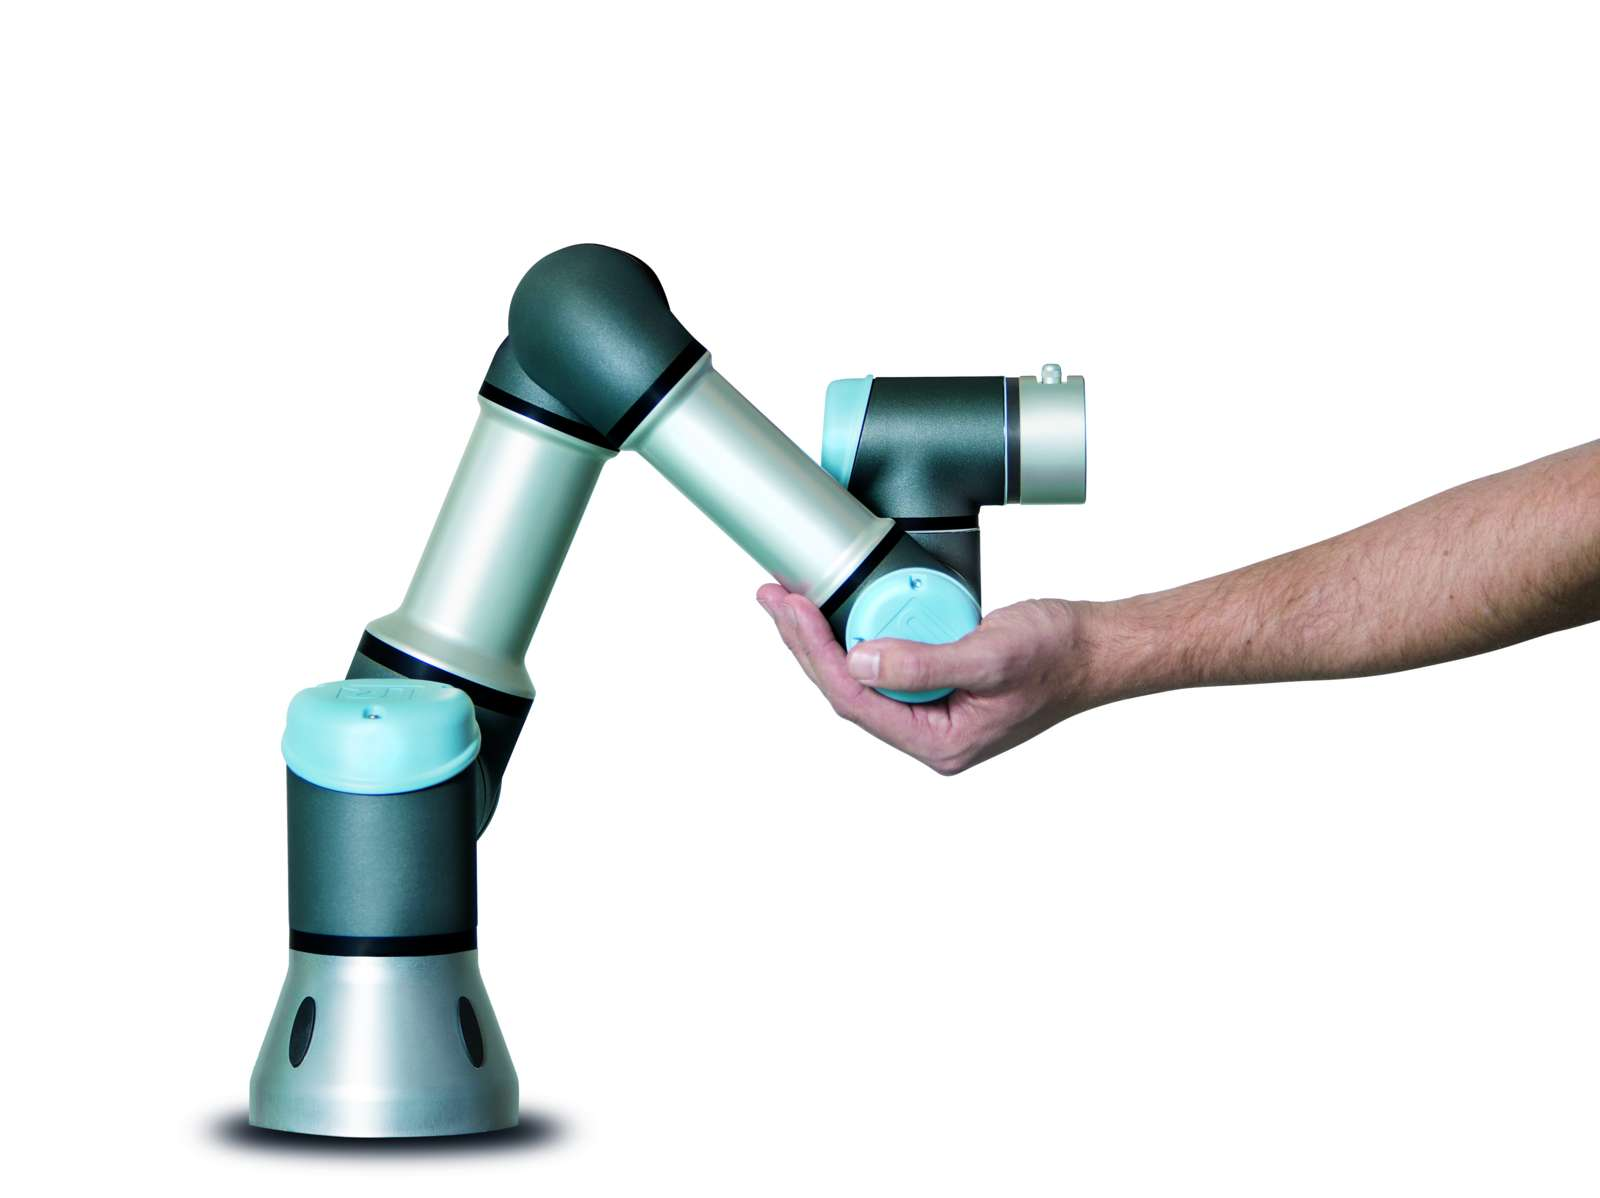 Cobots are much more than just industrial robots